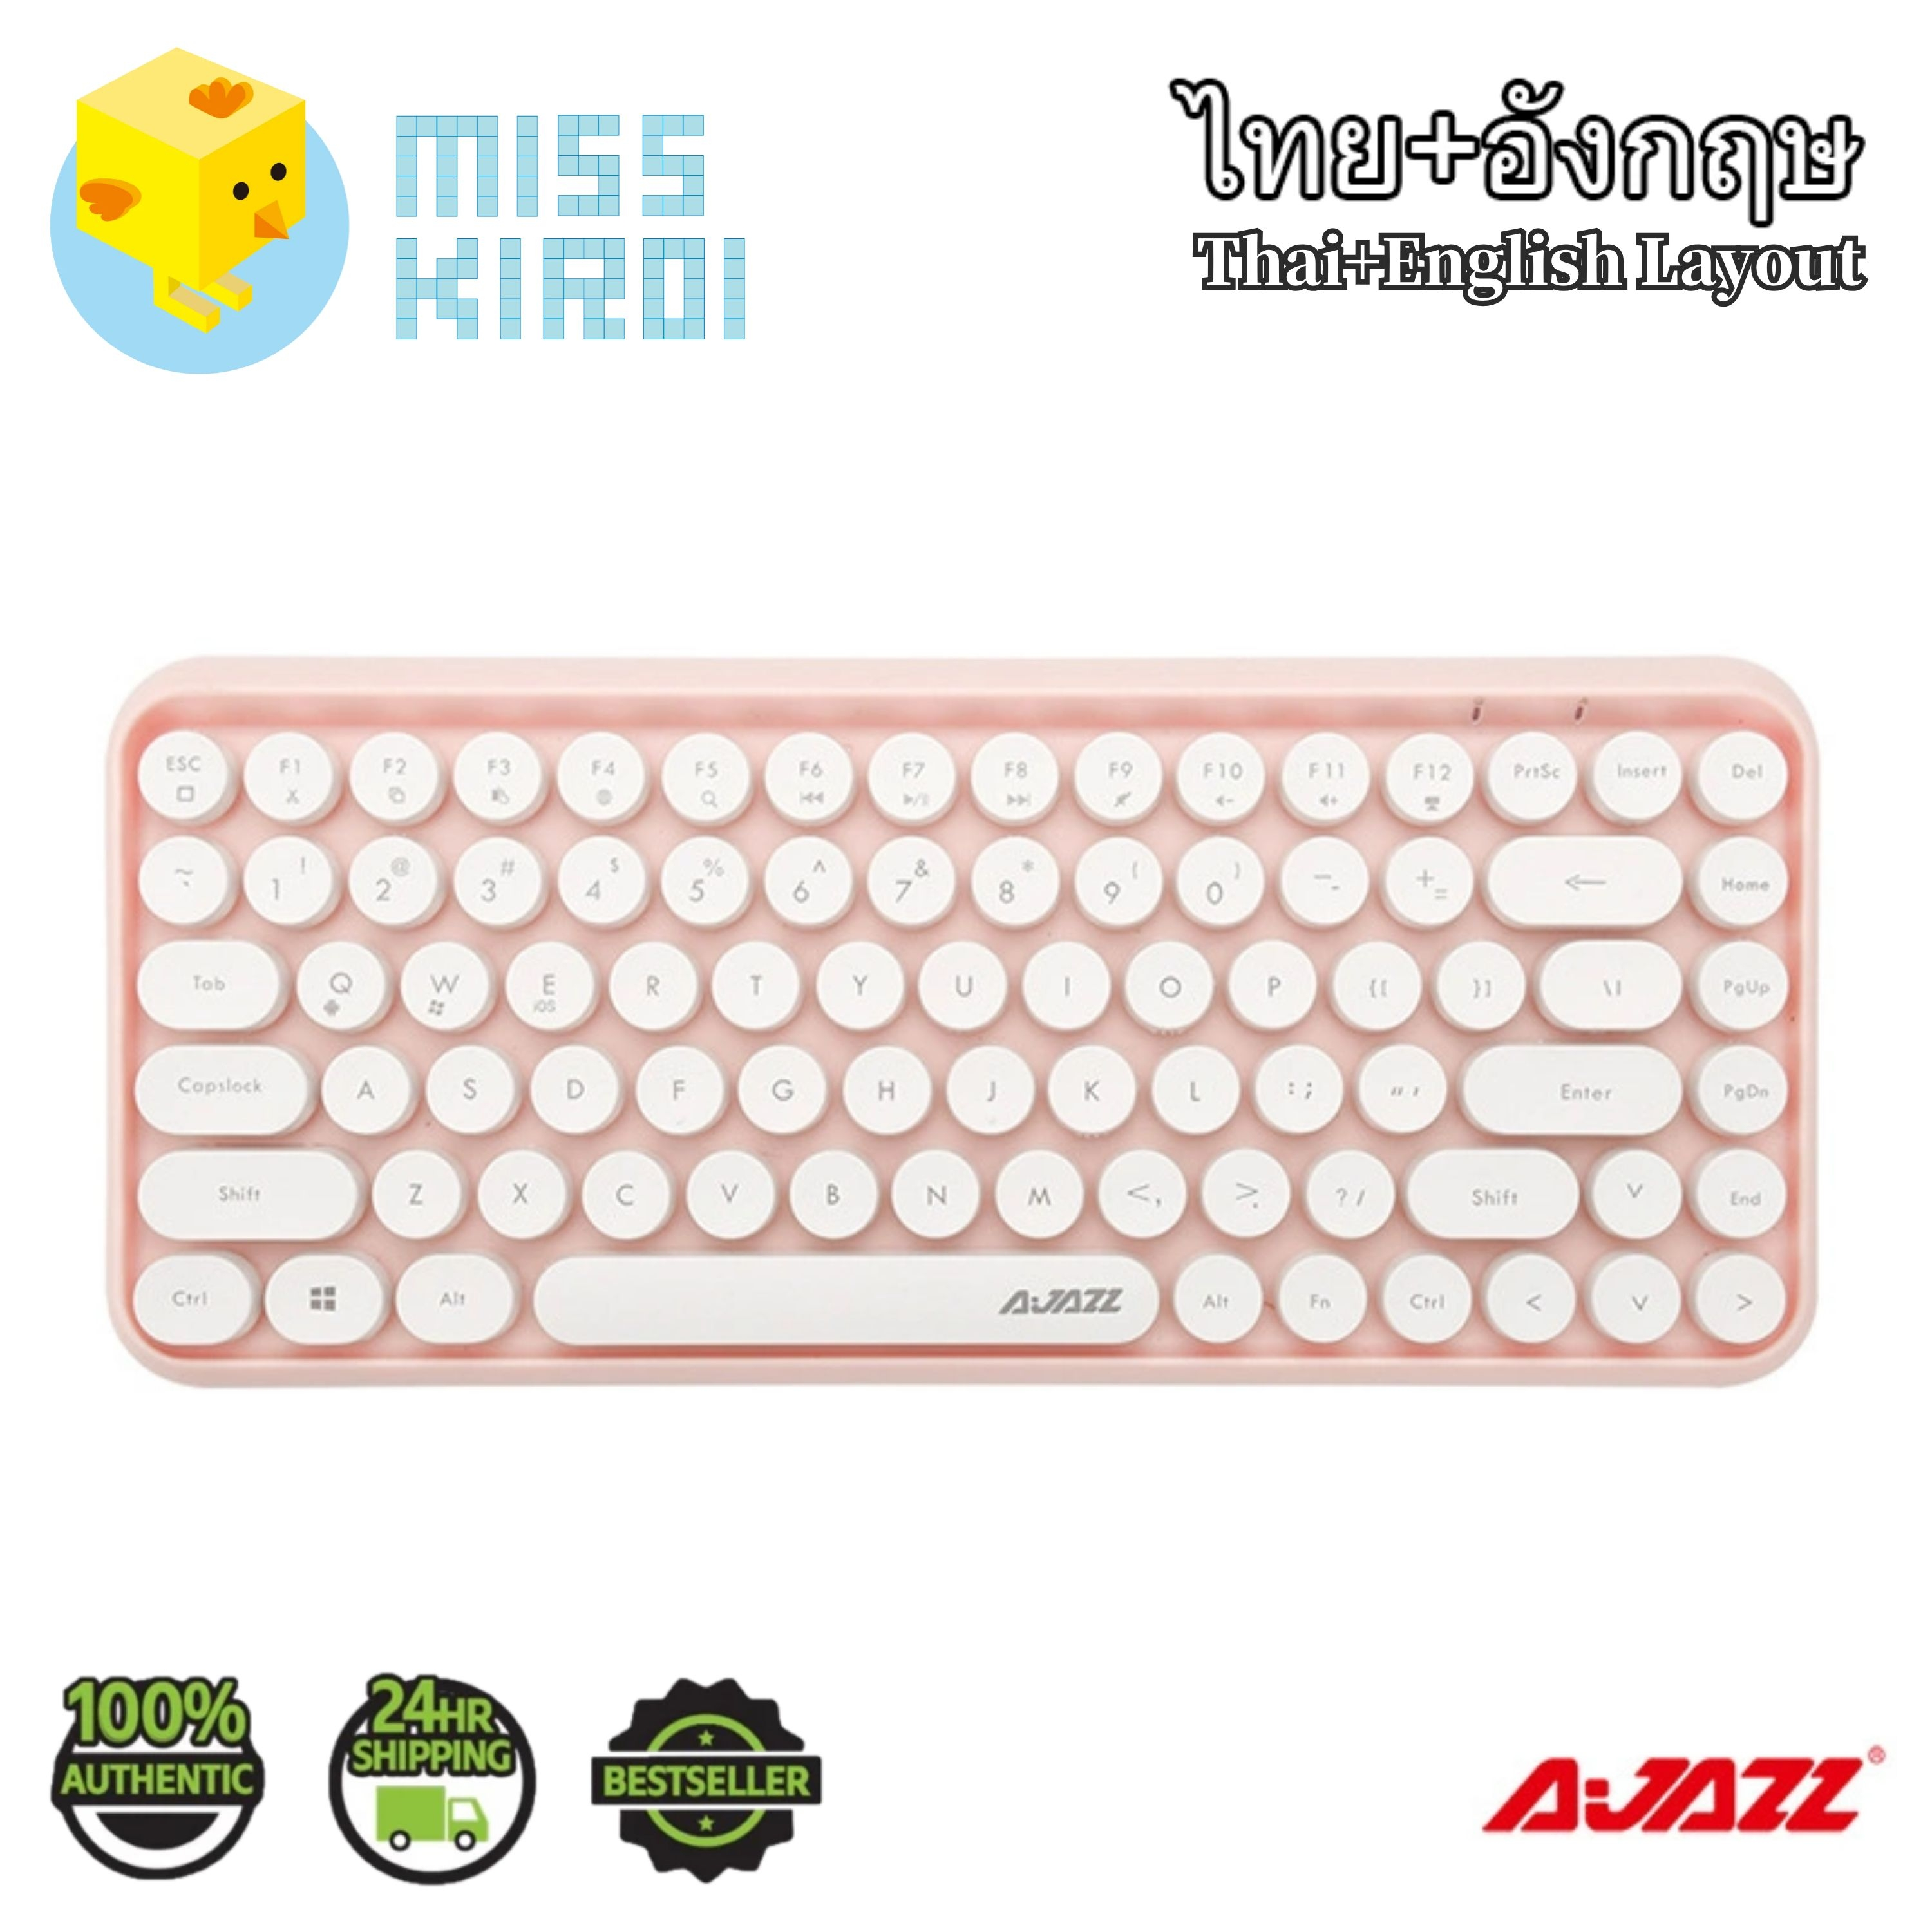 Ajazz 308i-Pure Bluetooth Office Pc/tablet Keyboard คีย์บอร์ดไร้สายบลูทูธ Keyboard American Broadcom 3.0 Bluetooth En/th English And Thai Layout Ios Android Pc Mobile Phone Tablet Smart Tv.